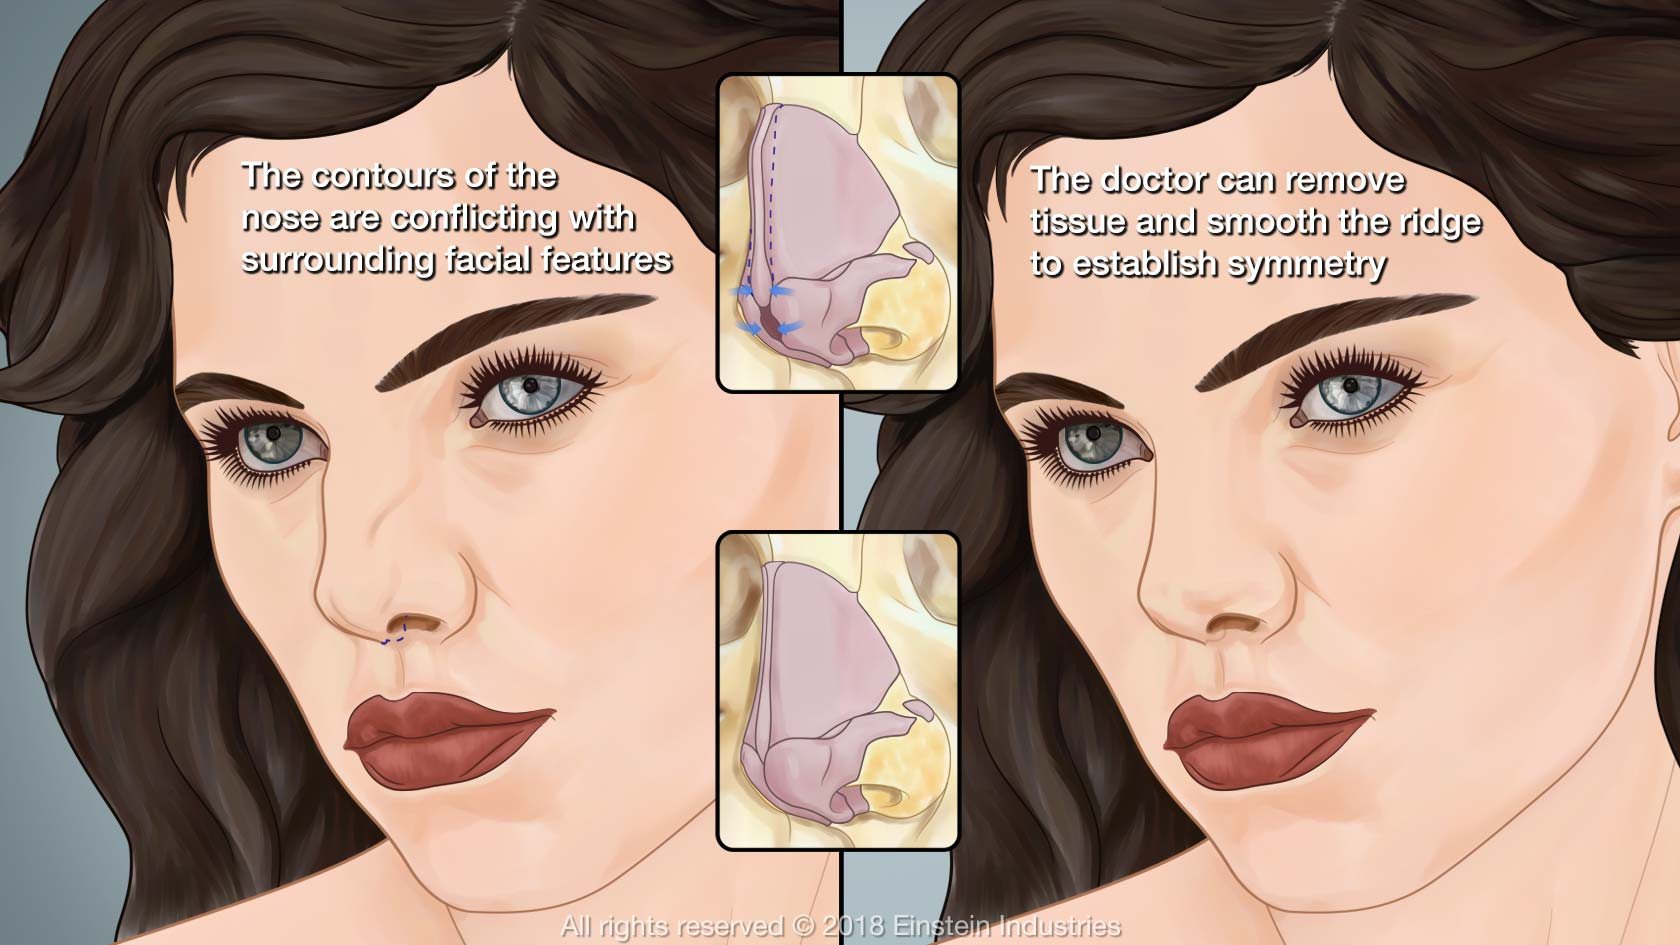 rhinoplasty illustration